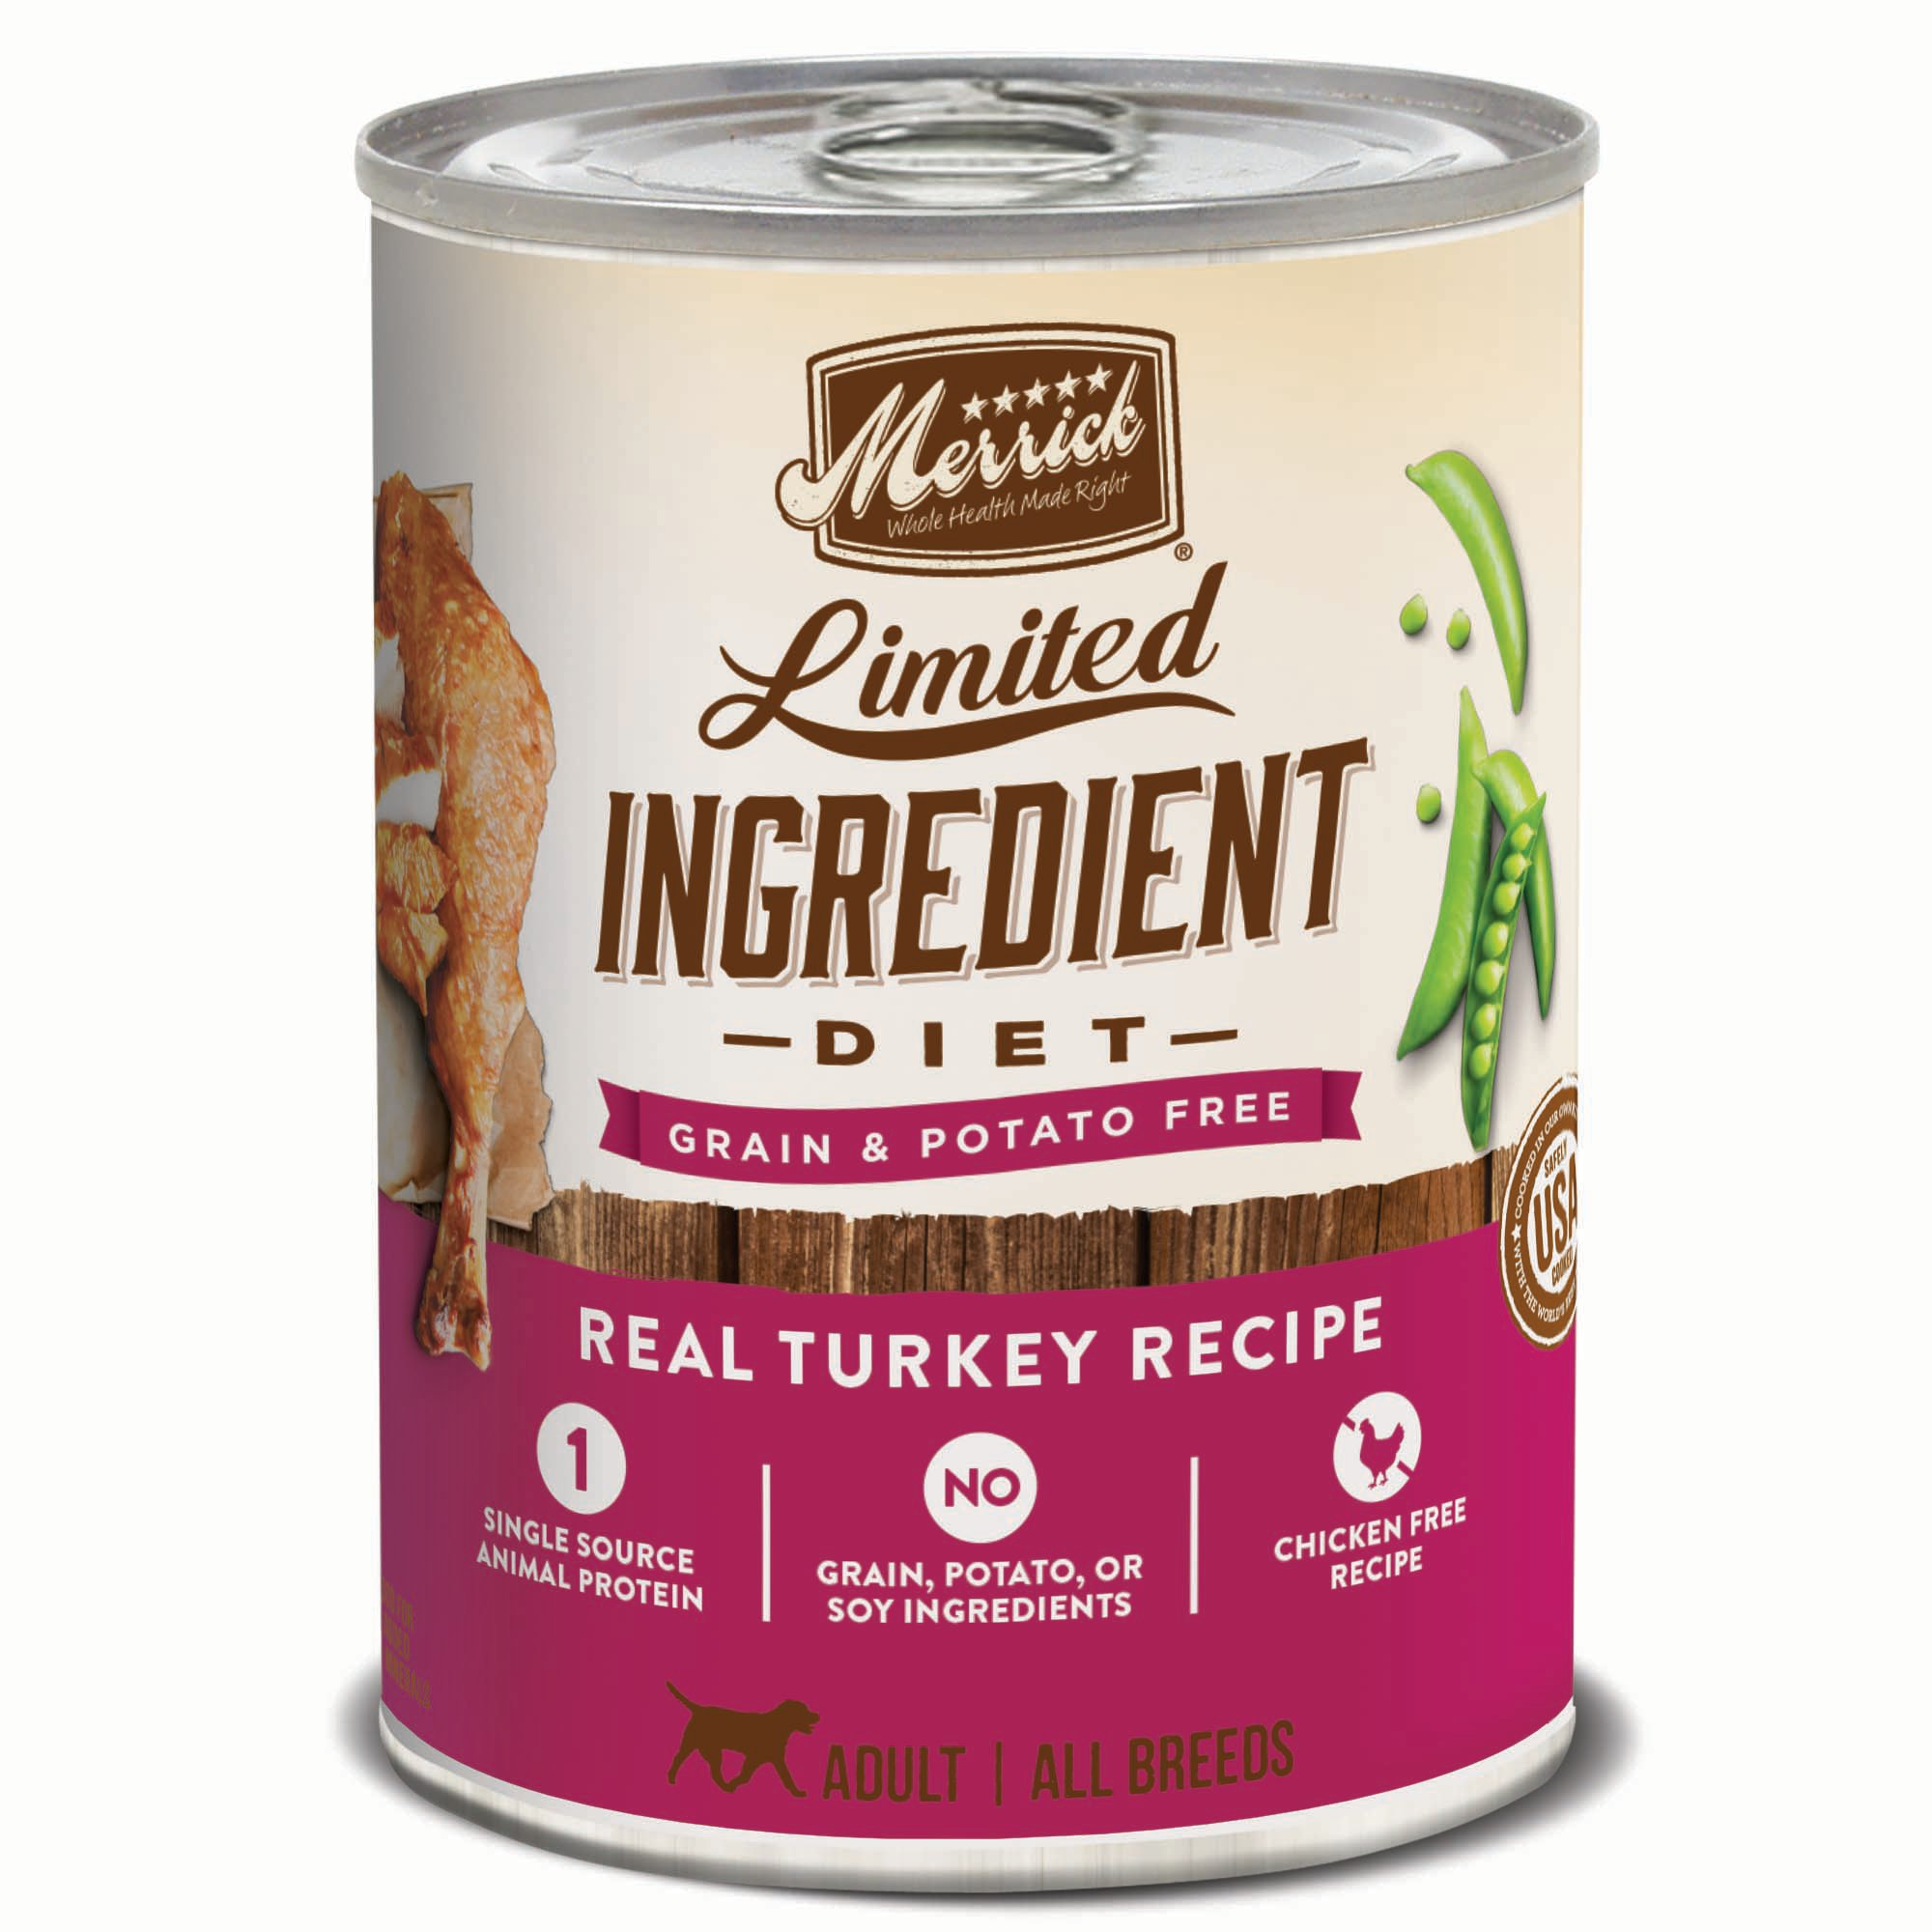 Merrick Limited Ingredient Diet Real Turkey Recipe Dog Food